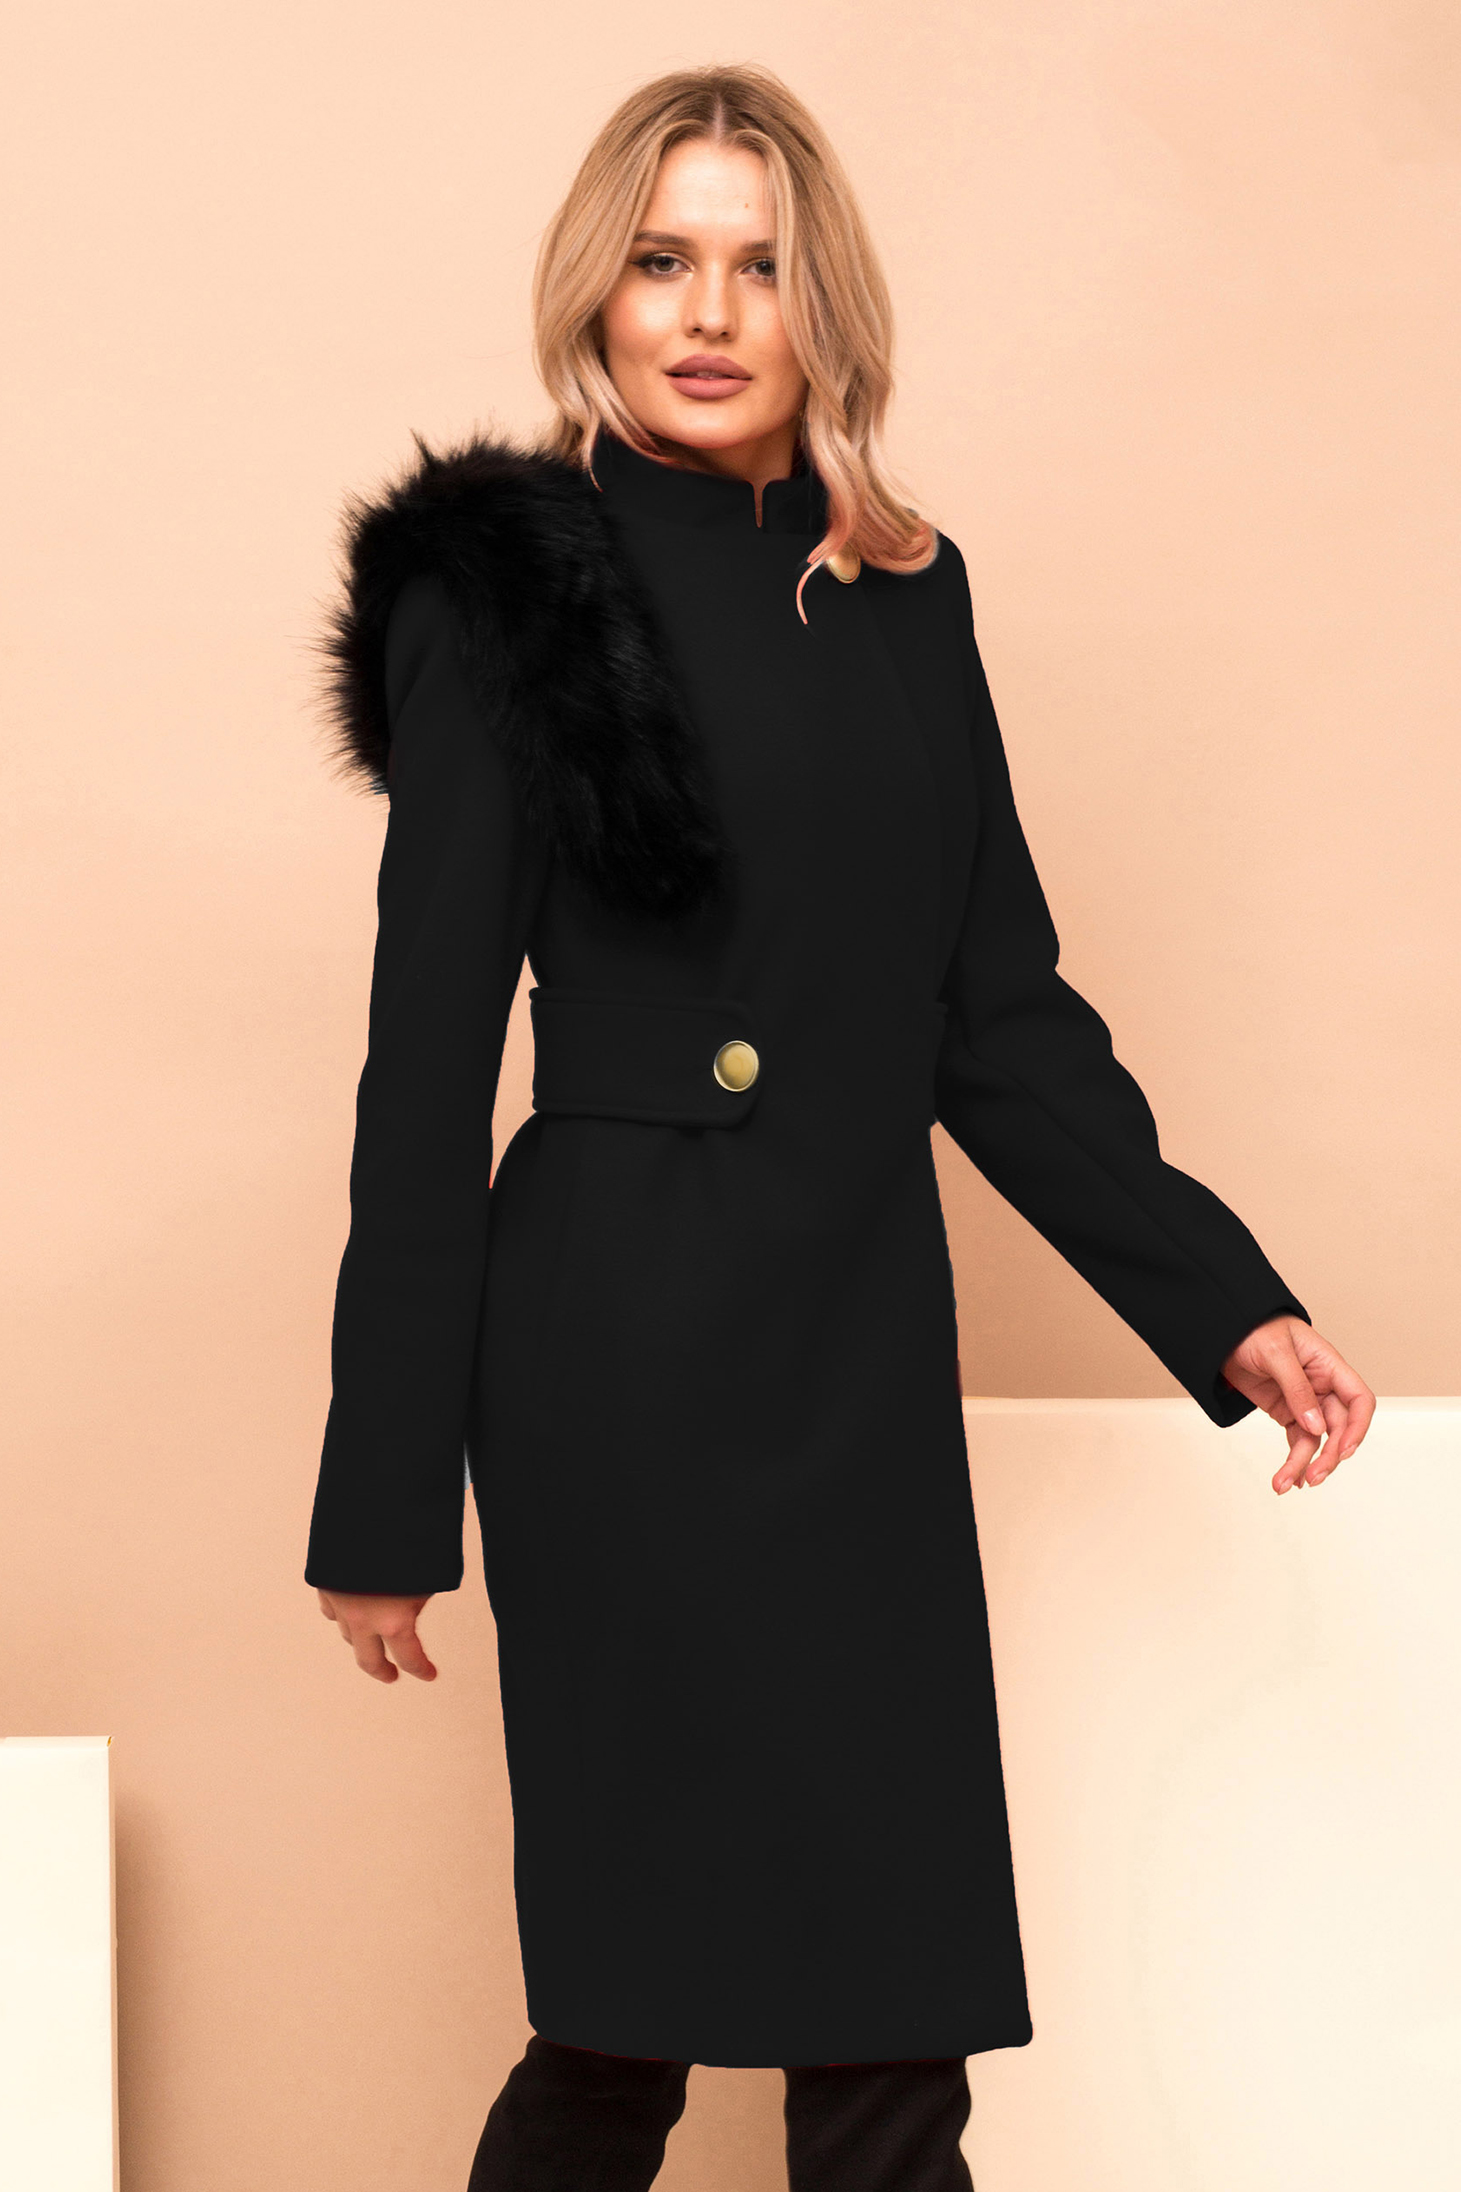 Coat black cloth with faux fur details accessorized with tied waistband